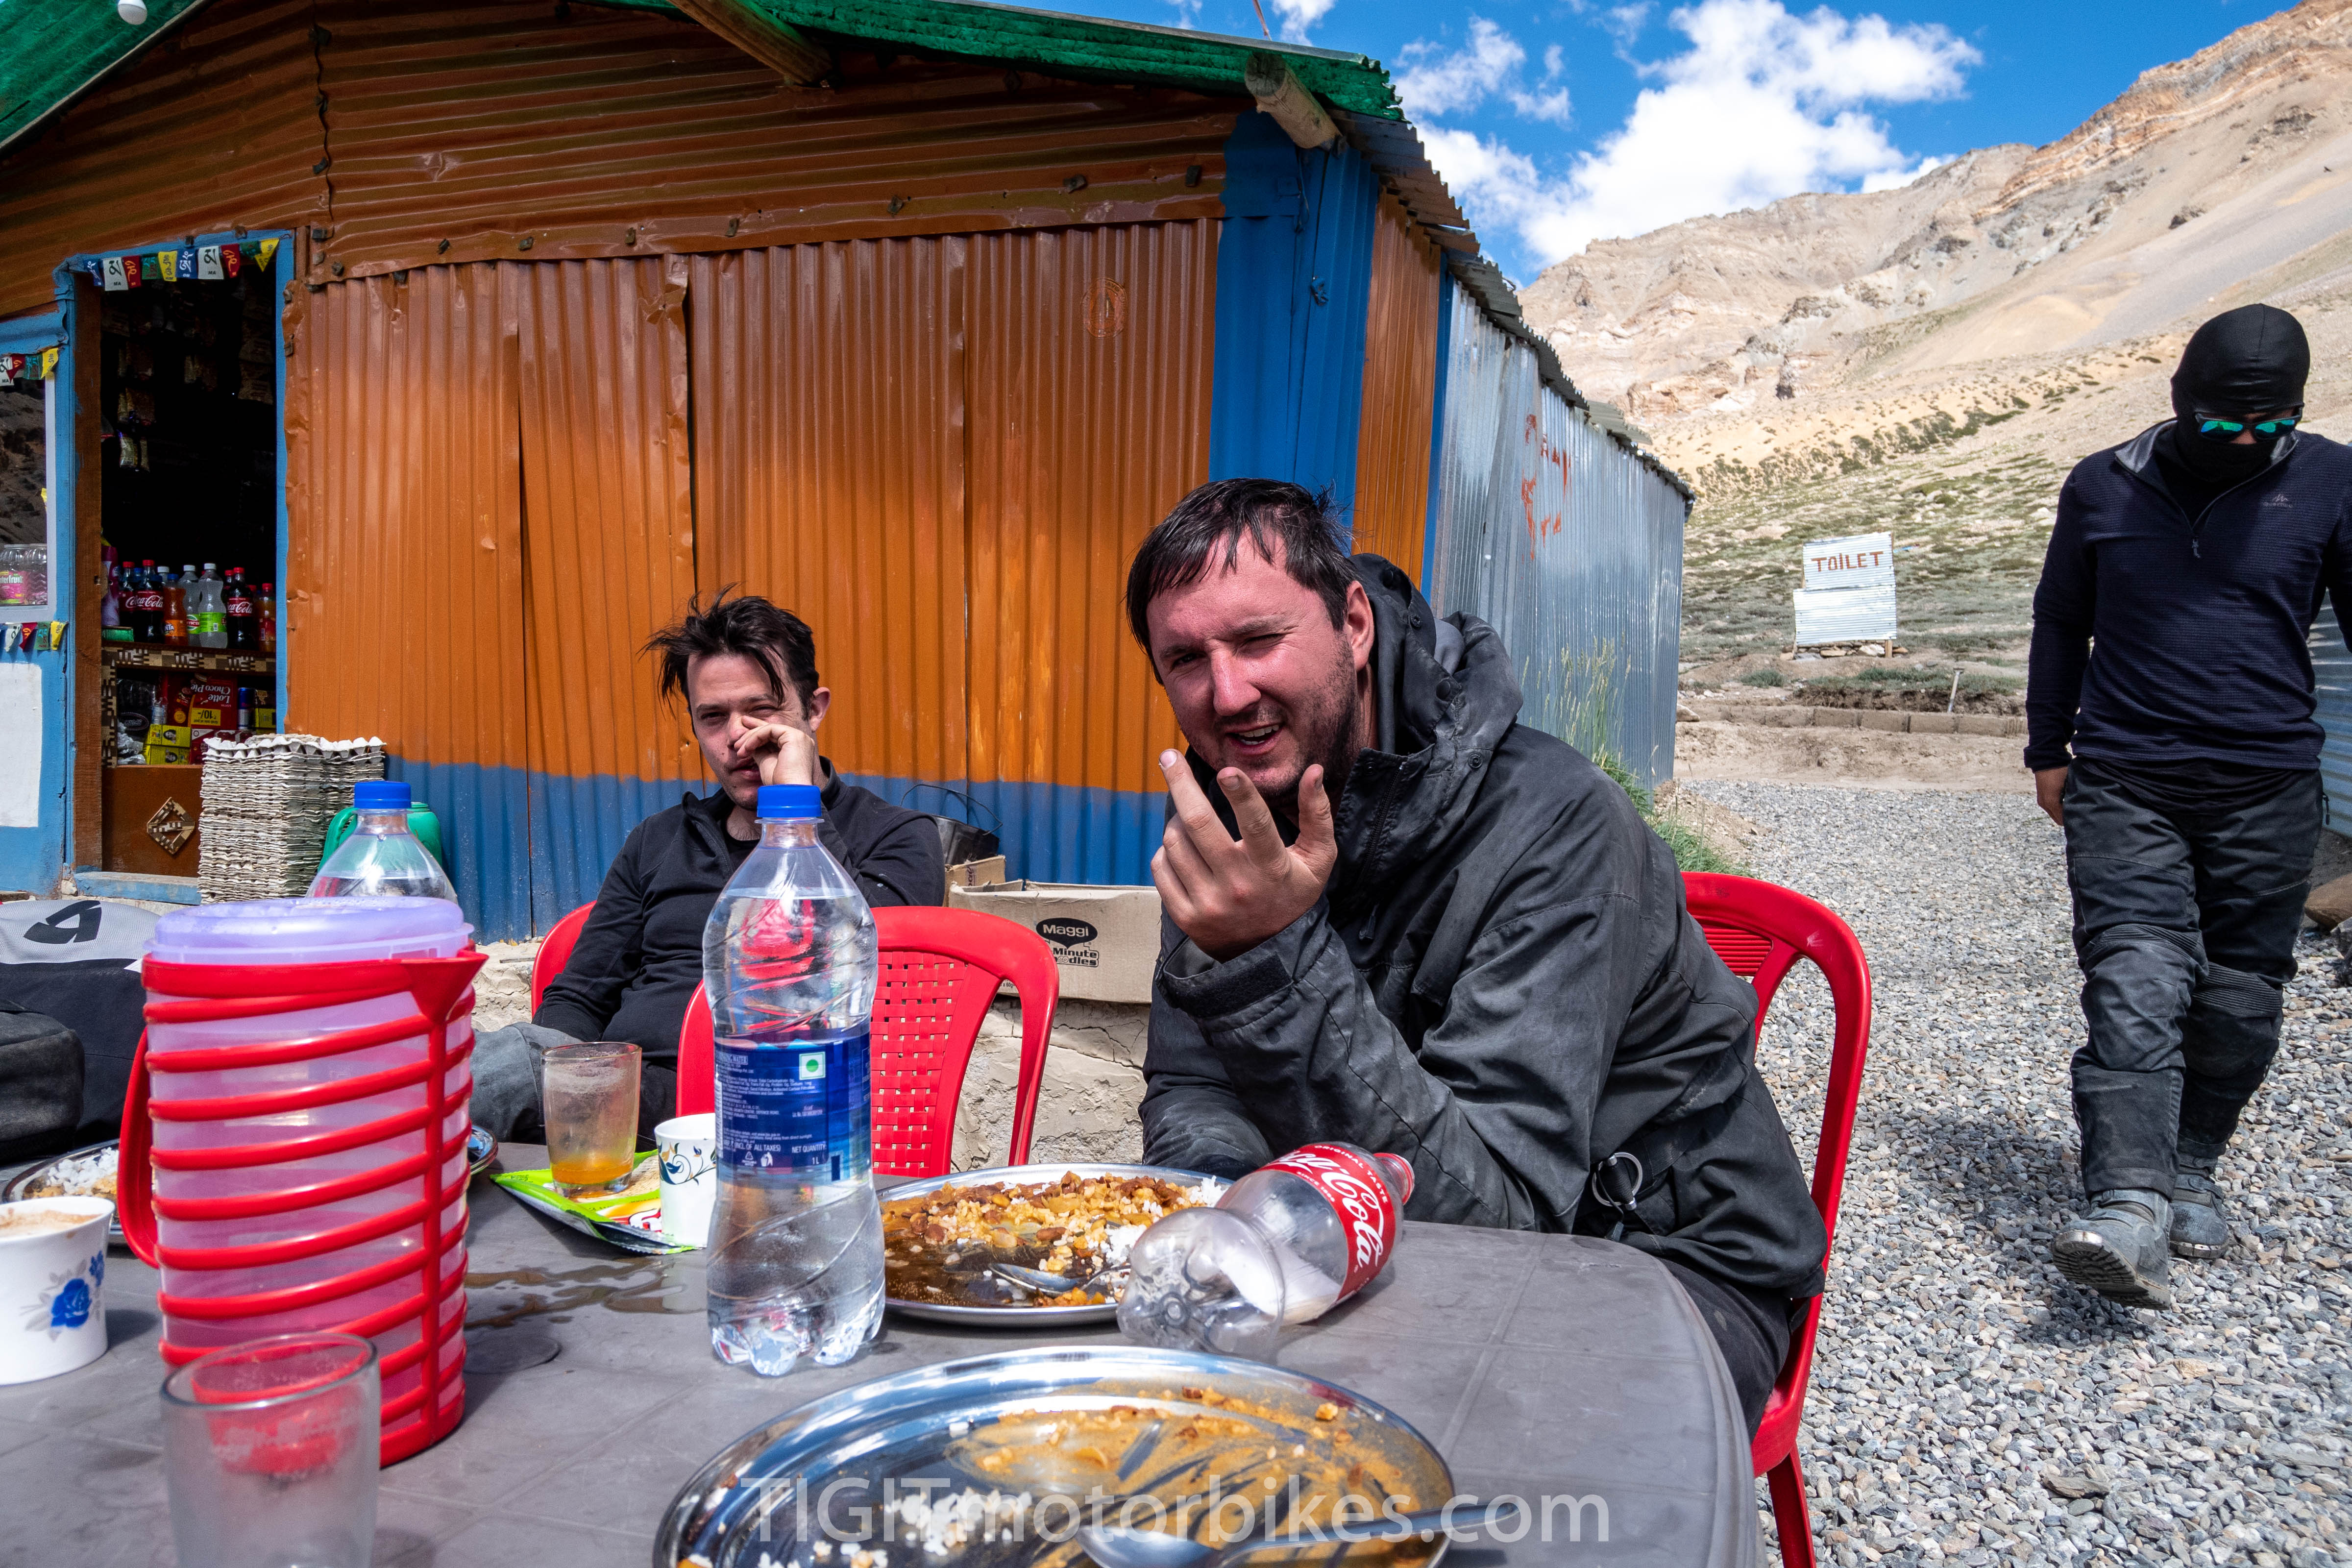 A high altitude meal in the Himalayas